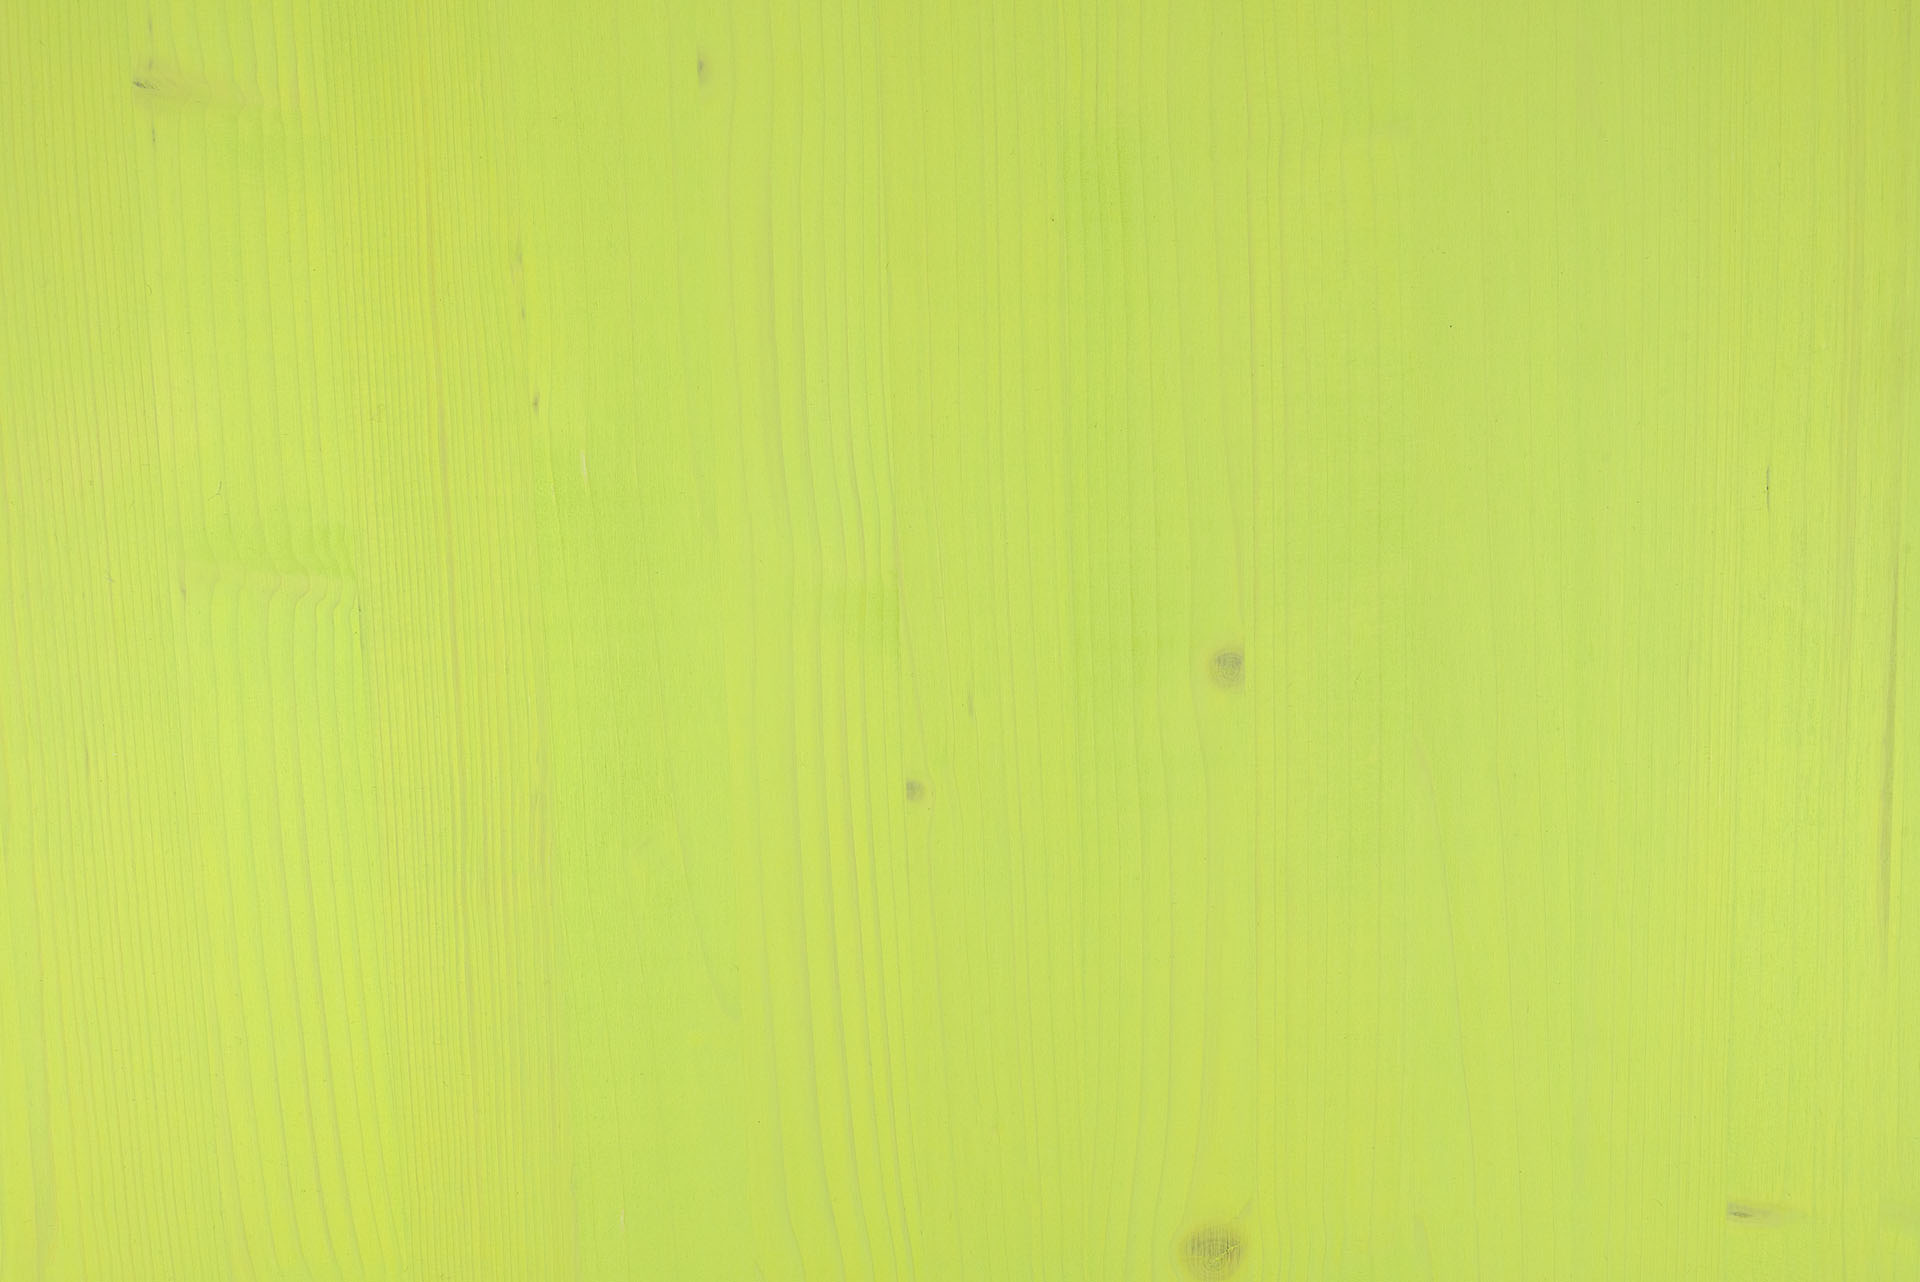 Texture of a green wooden board